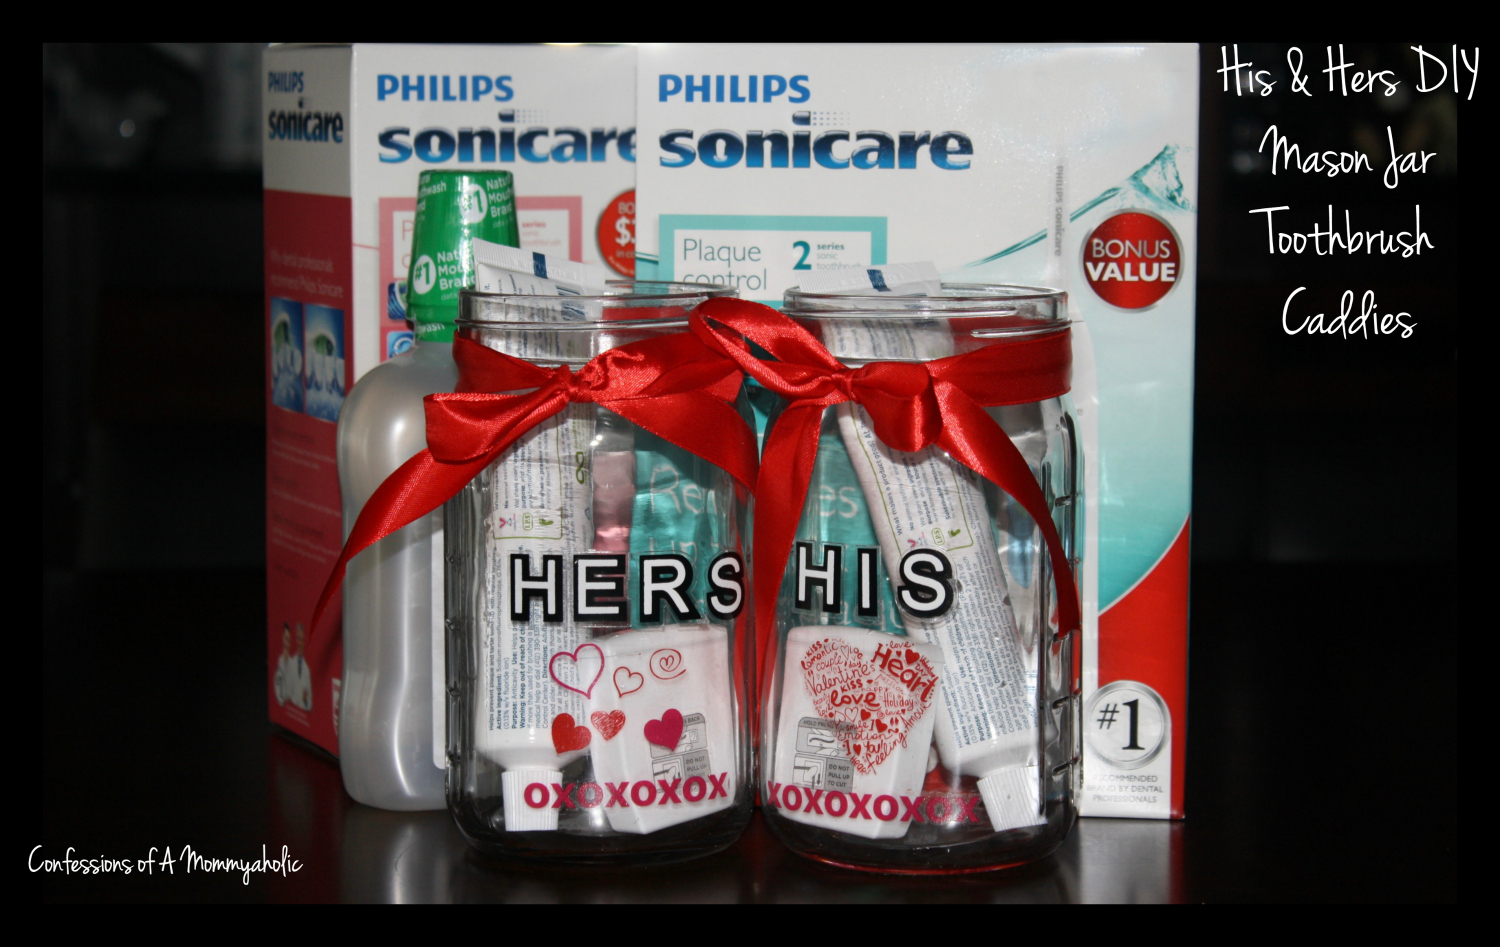 His-Hers-DIY-Mason-Jar-Toothbrush-Caddies